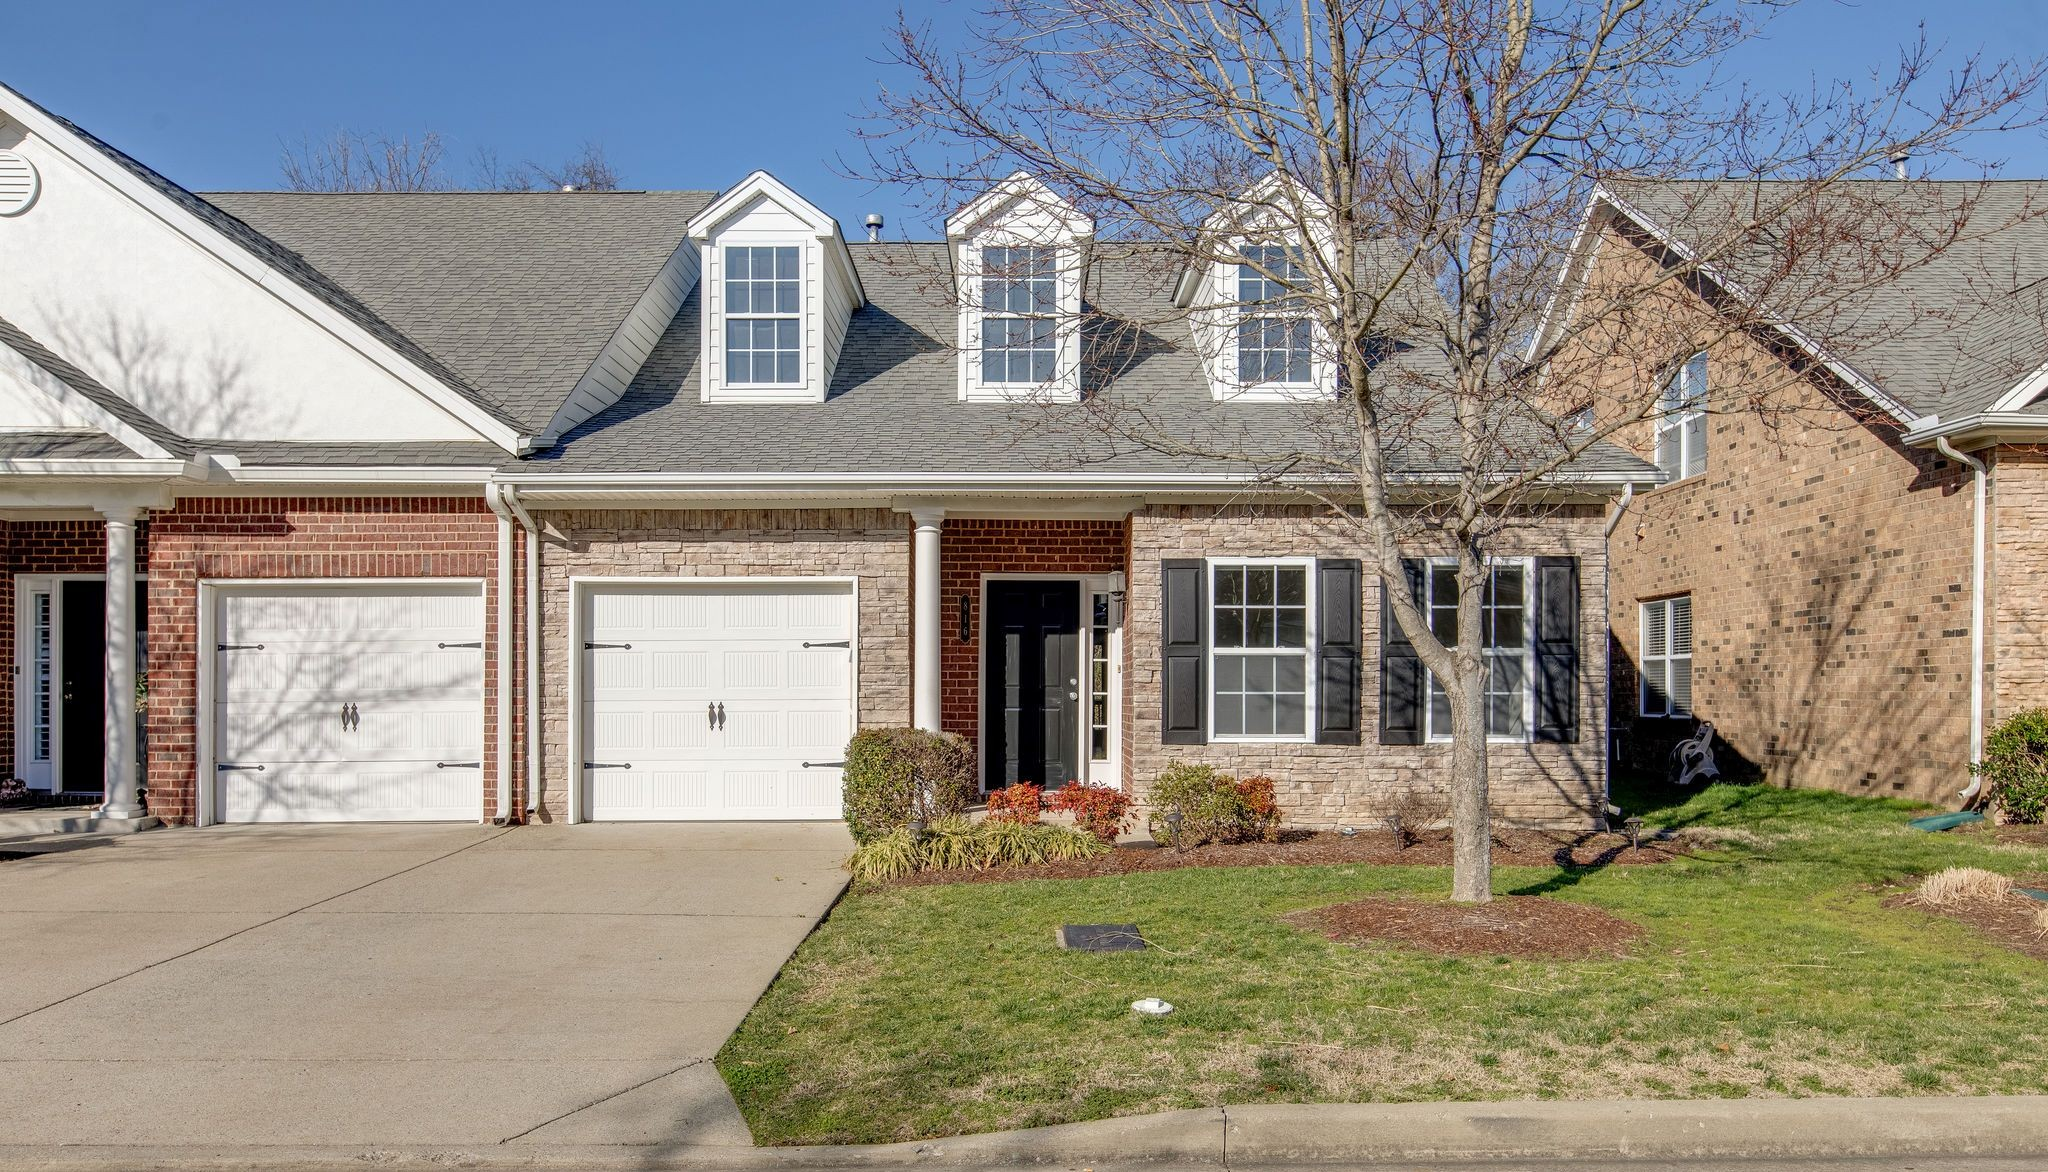 816 Barrington Place Dr, Brentwood, TN 37027 - Brentwood, TN real estate listing